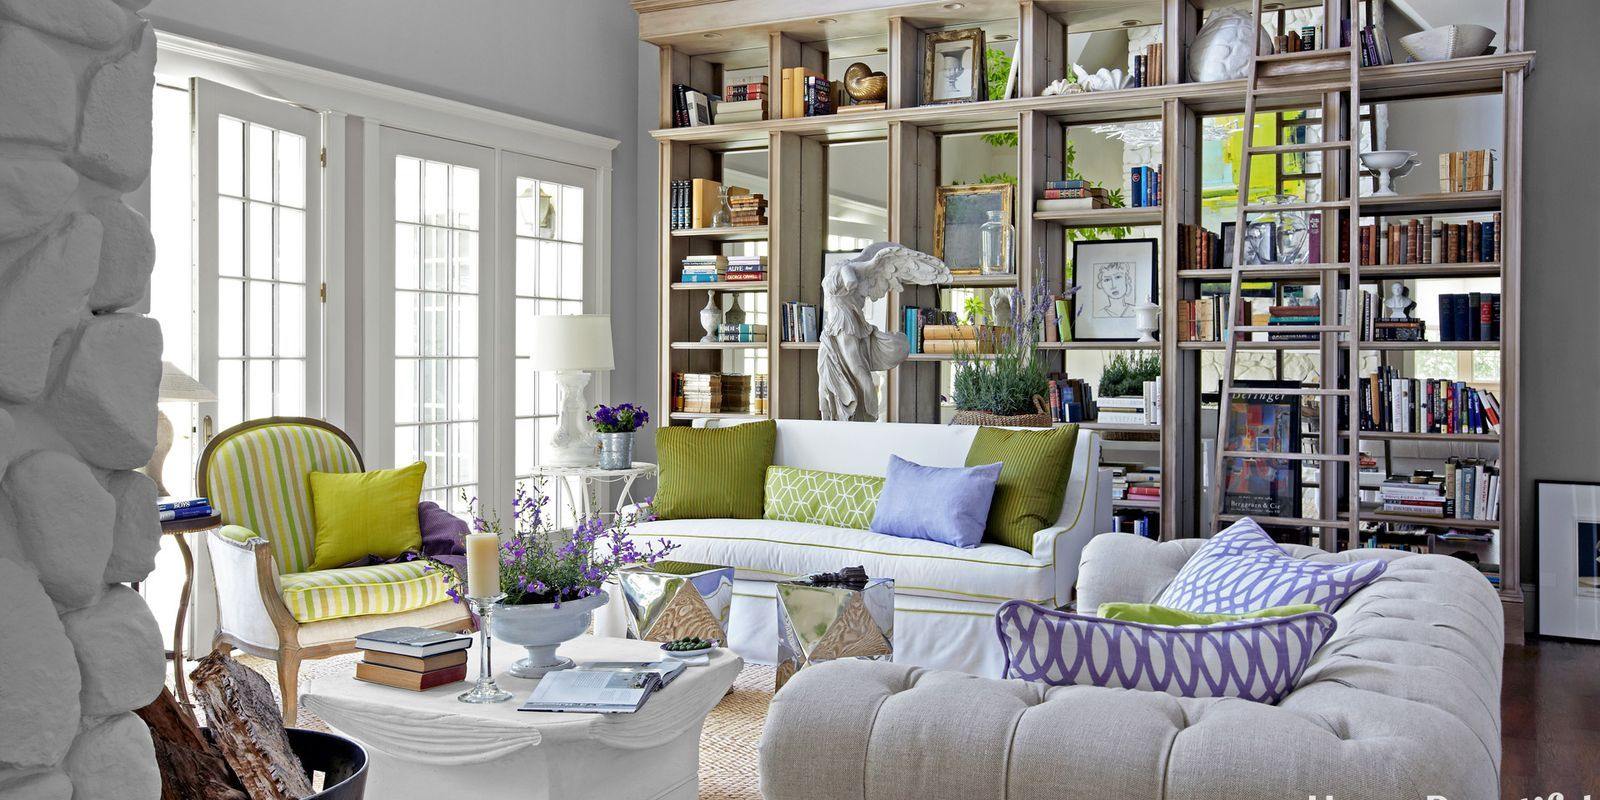 Beau Add Some Excitement To Your Shelves With These Ideas.